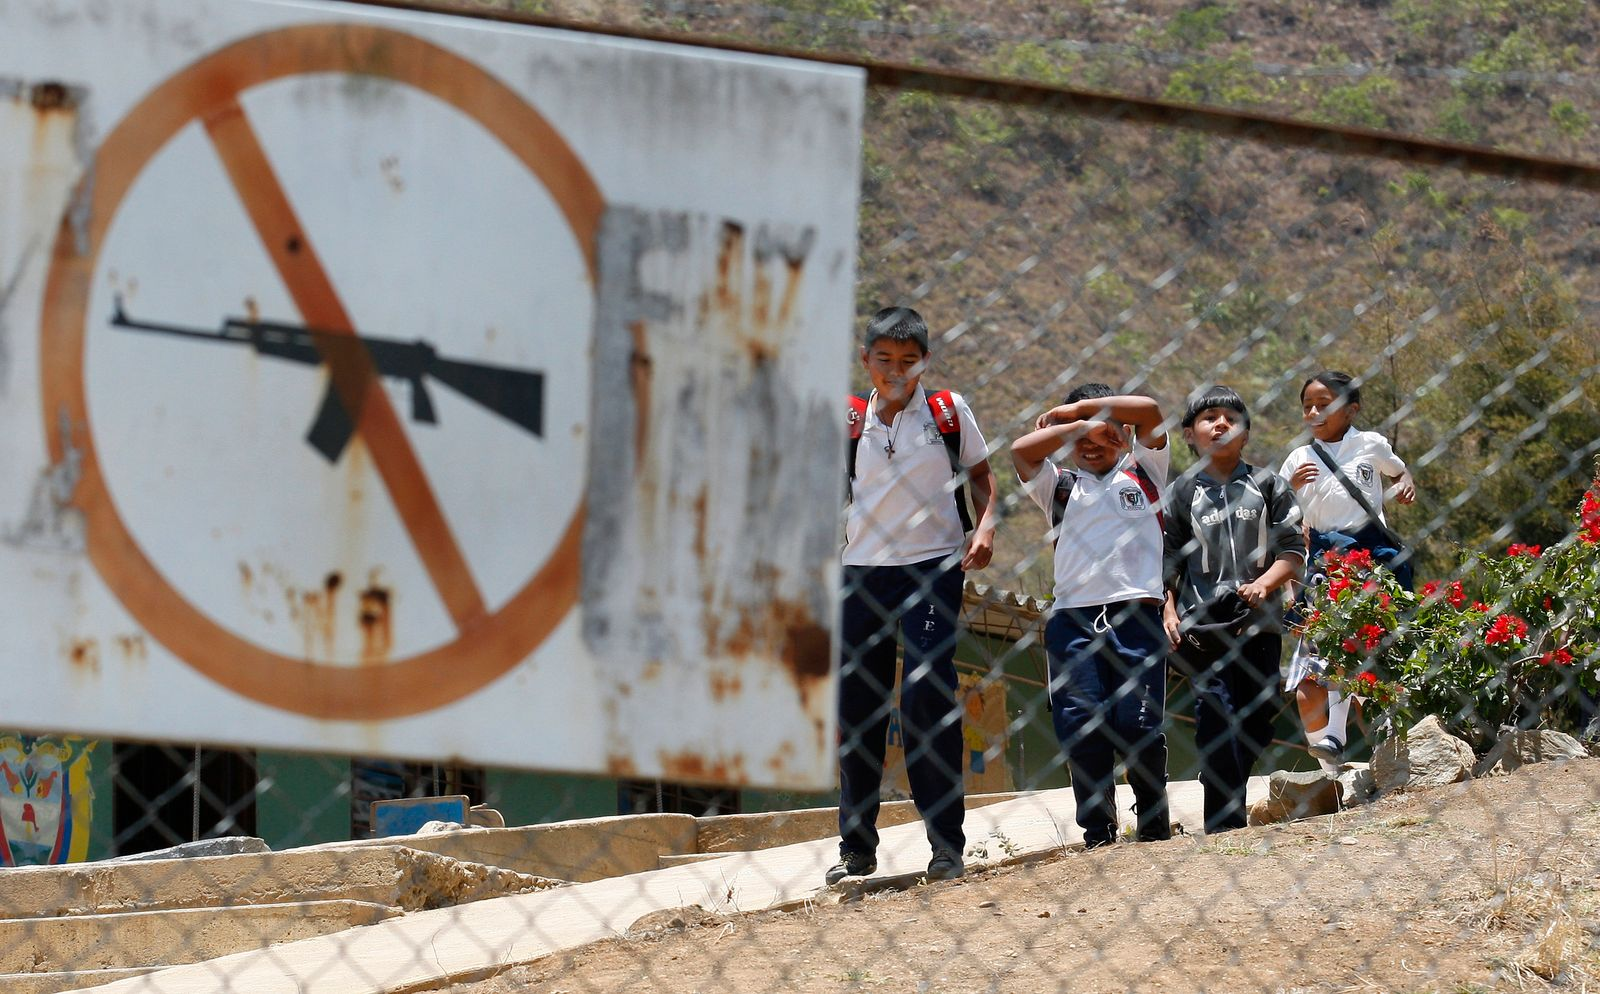 School children walk behind a sign prohibiting weapons at a school in Toribio